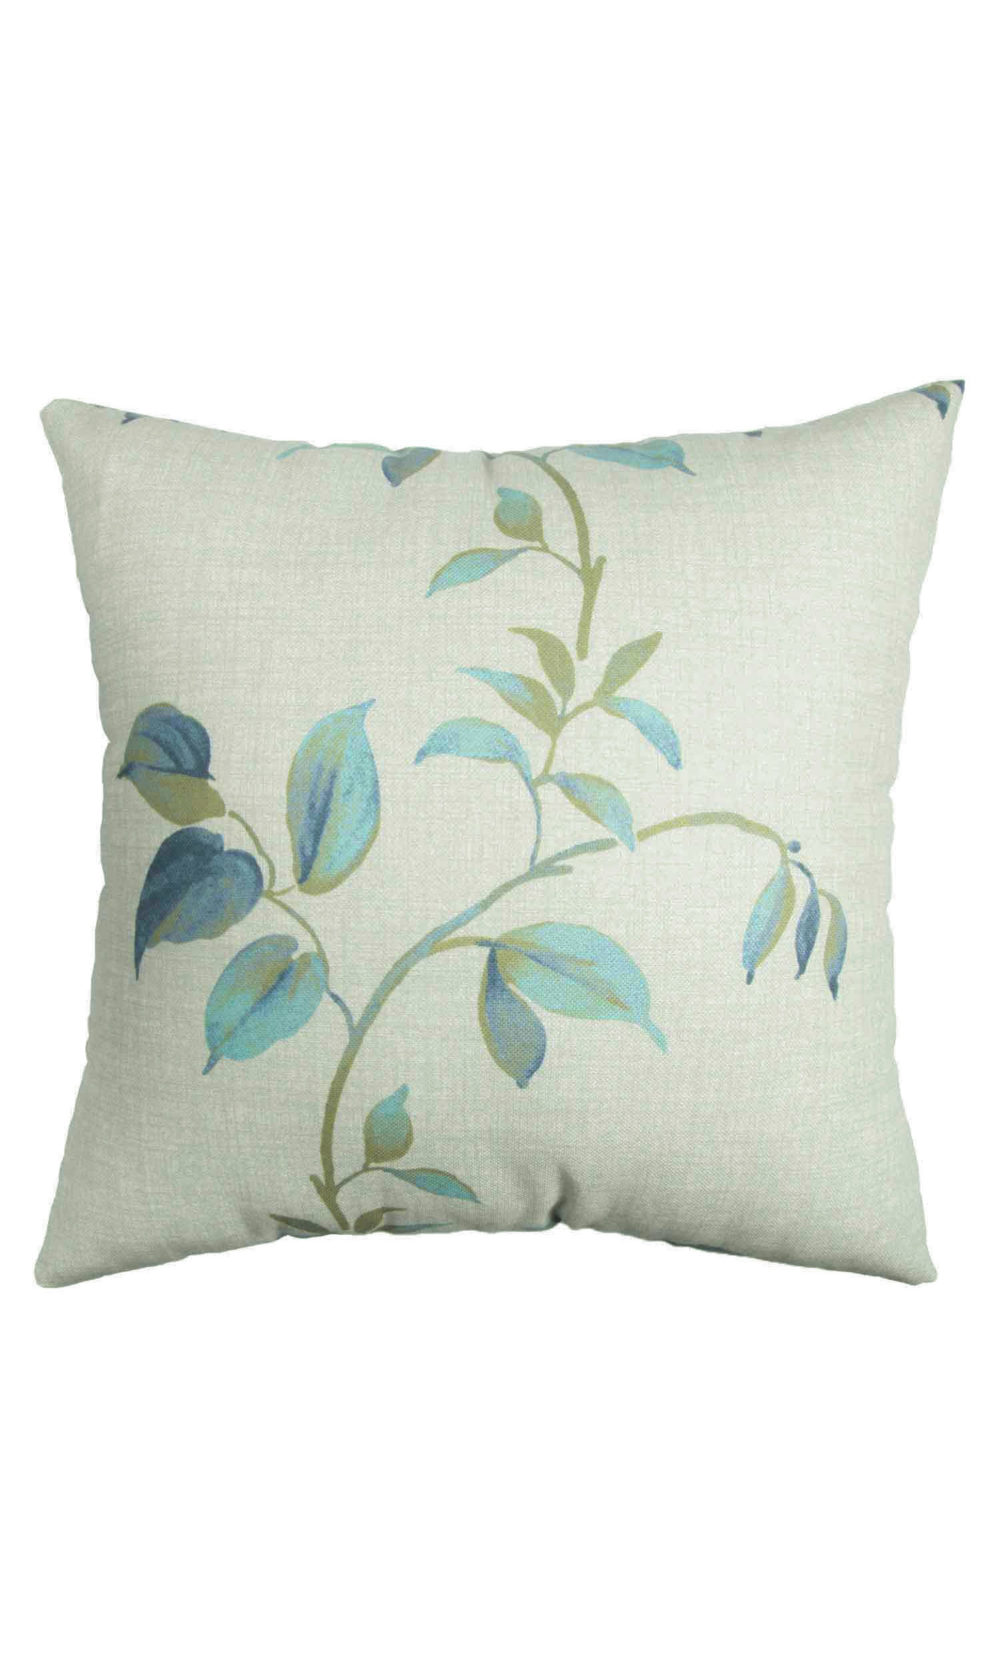 Floral Printed Affordable Cushion Cover